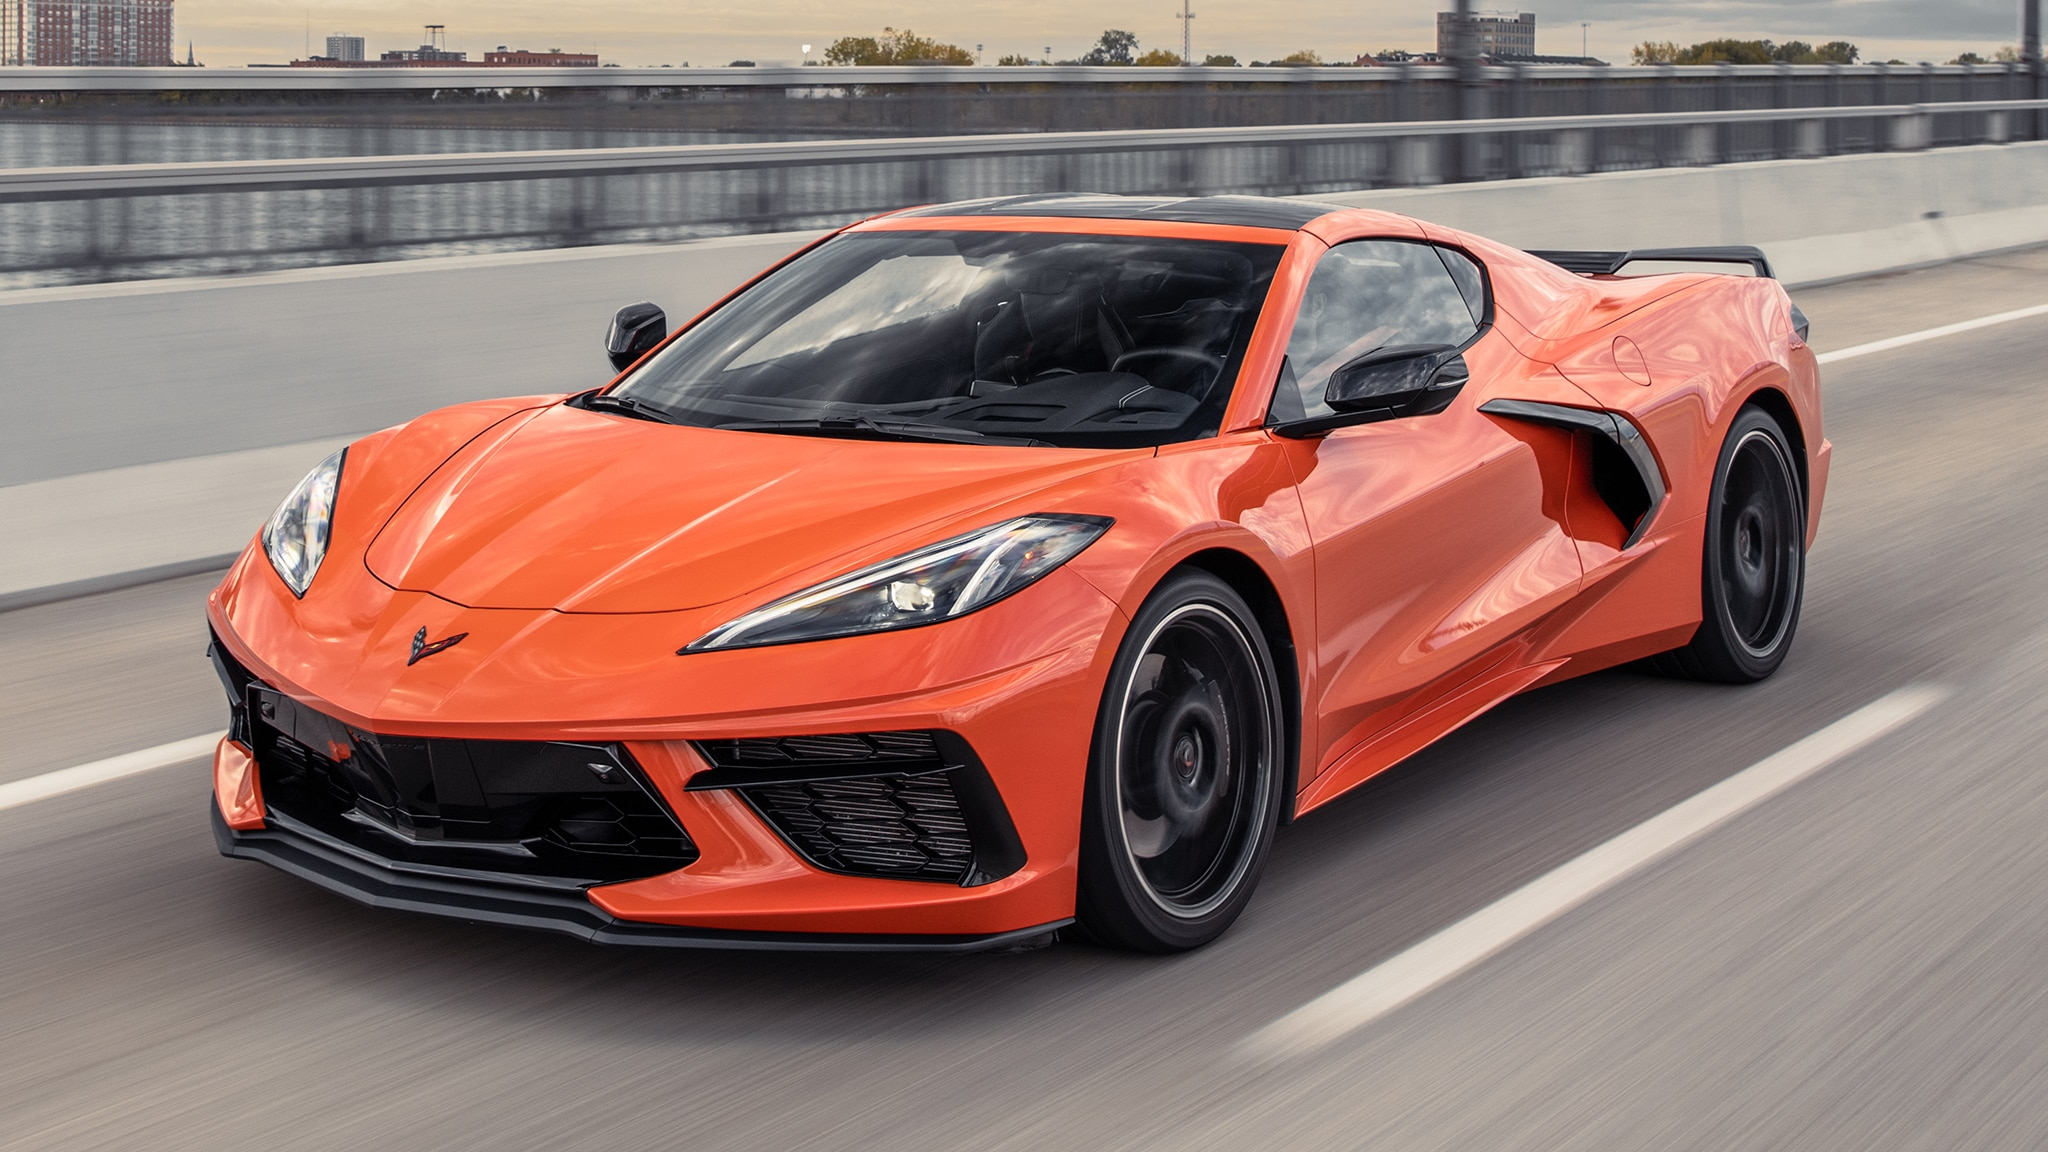 The Chevrolet Corvette Is The 2020 Motortrend Car Of The Year 2021 Chevy Corvette Used, Warranty, Weight